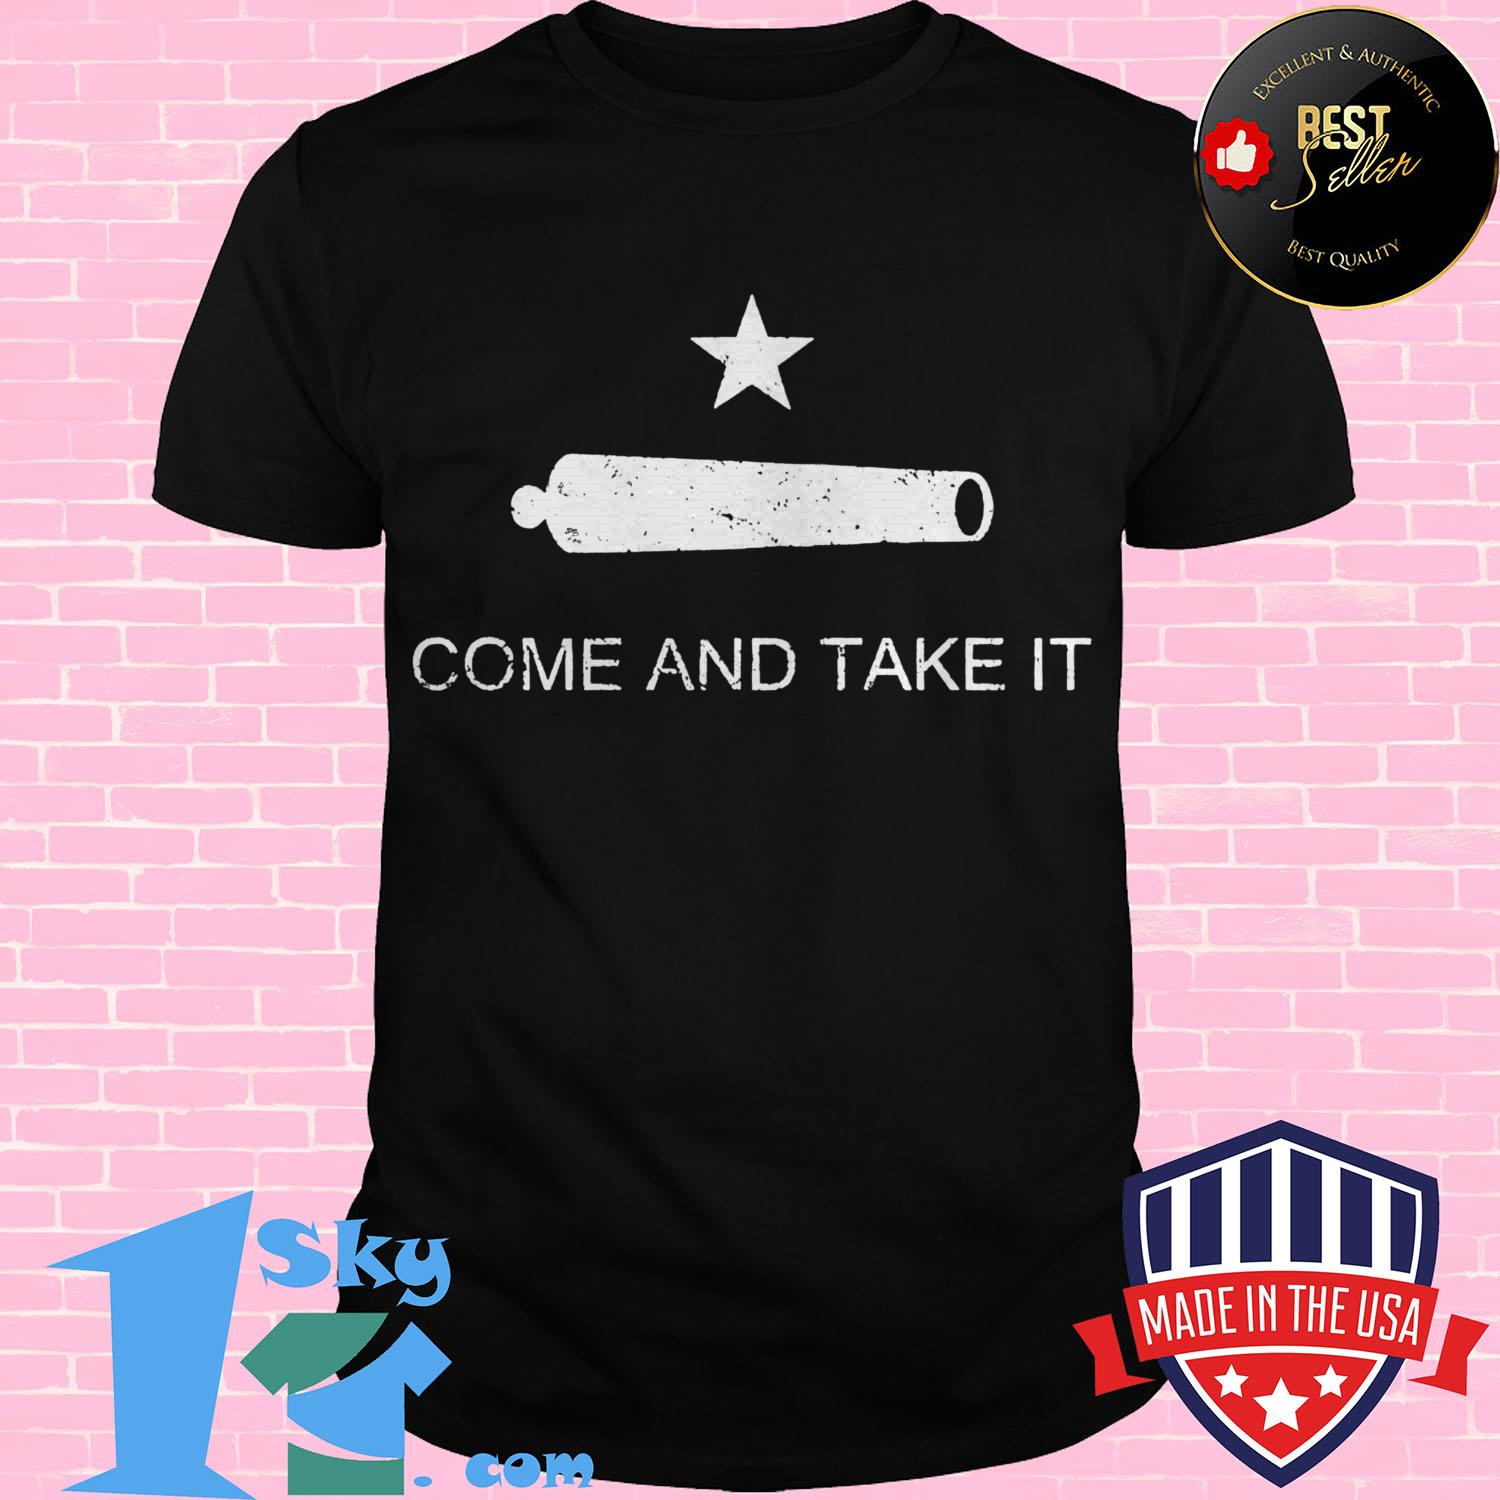 historic texas flag come and take it ladies tee - Historic Texas Flag Come and Take It shirt